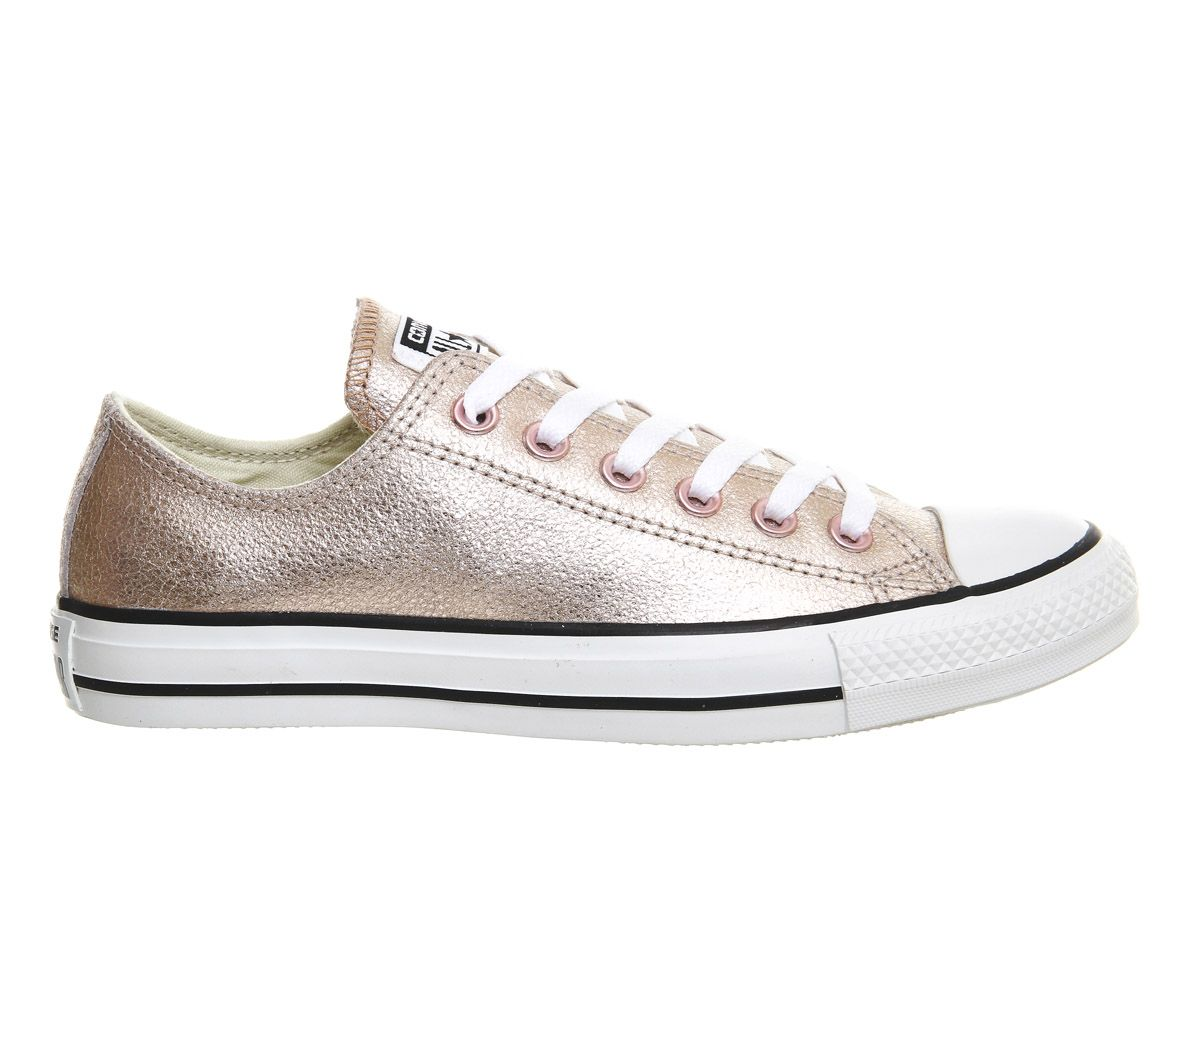 Converse Allstar Low Lthr Rose Gold Exclusive - Unisex Sports ... 1585fab5b